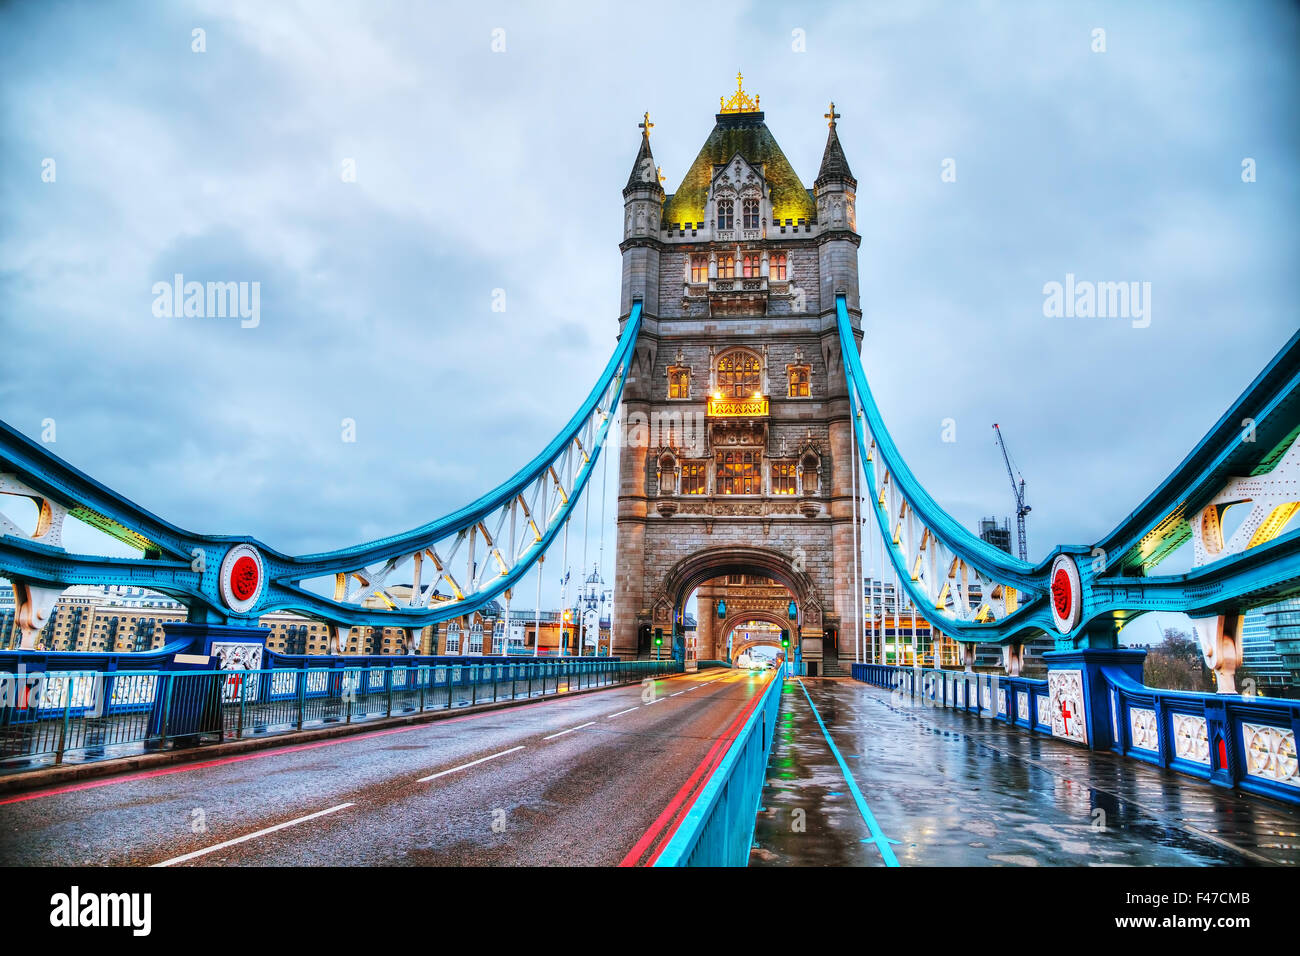 Il Tower Bridge di Londra, Gran Bretagna Foto Stock